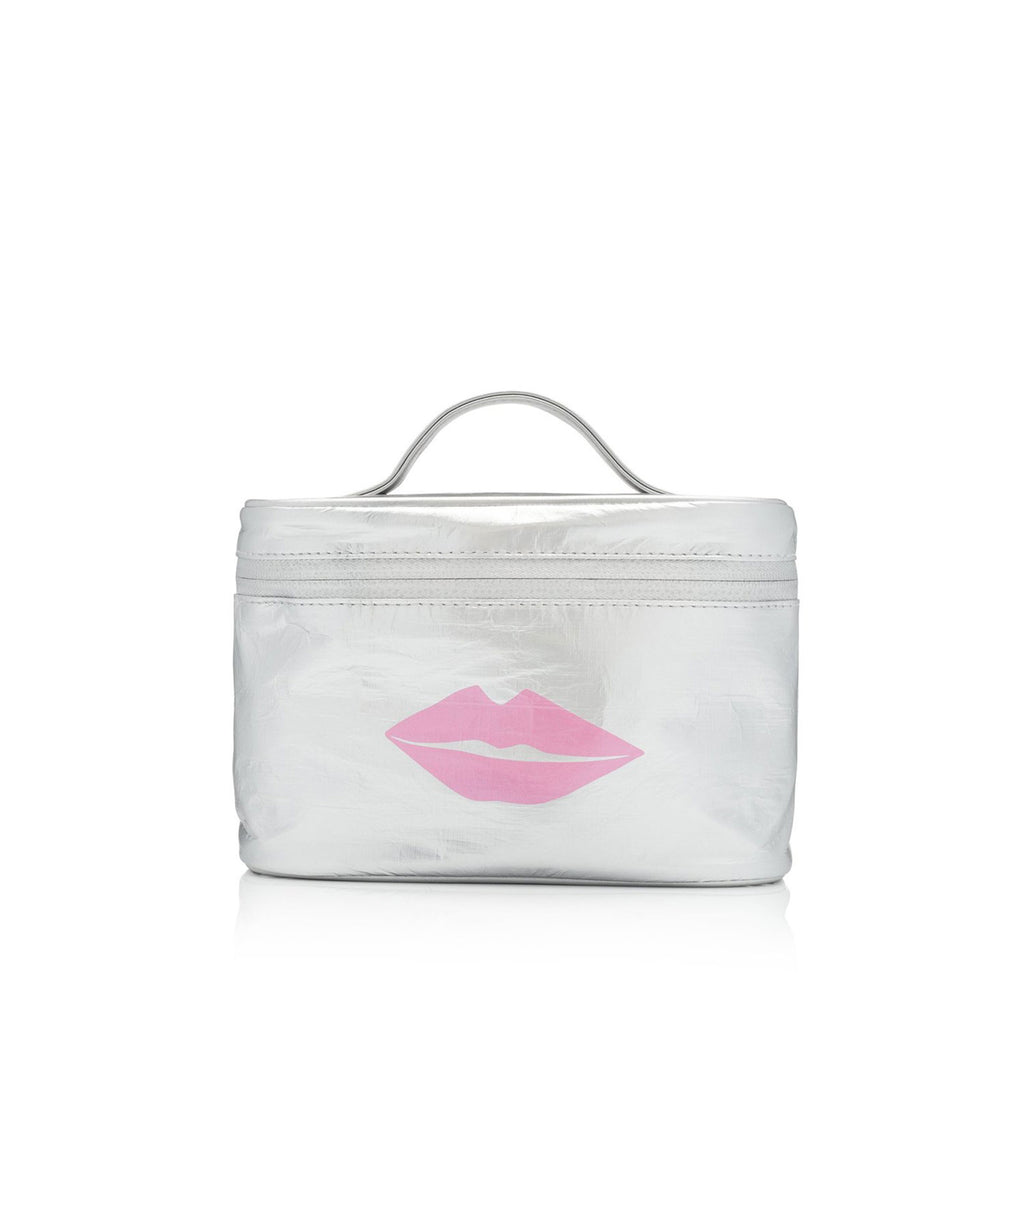 HI Love Travel Makeup Carrier Silver Pink Lips